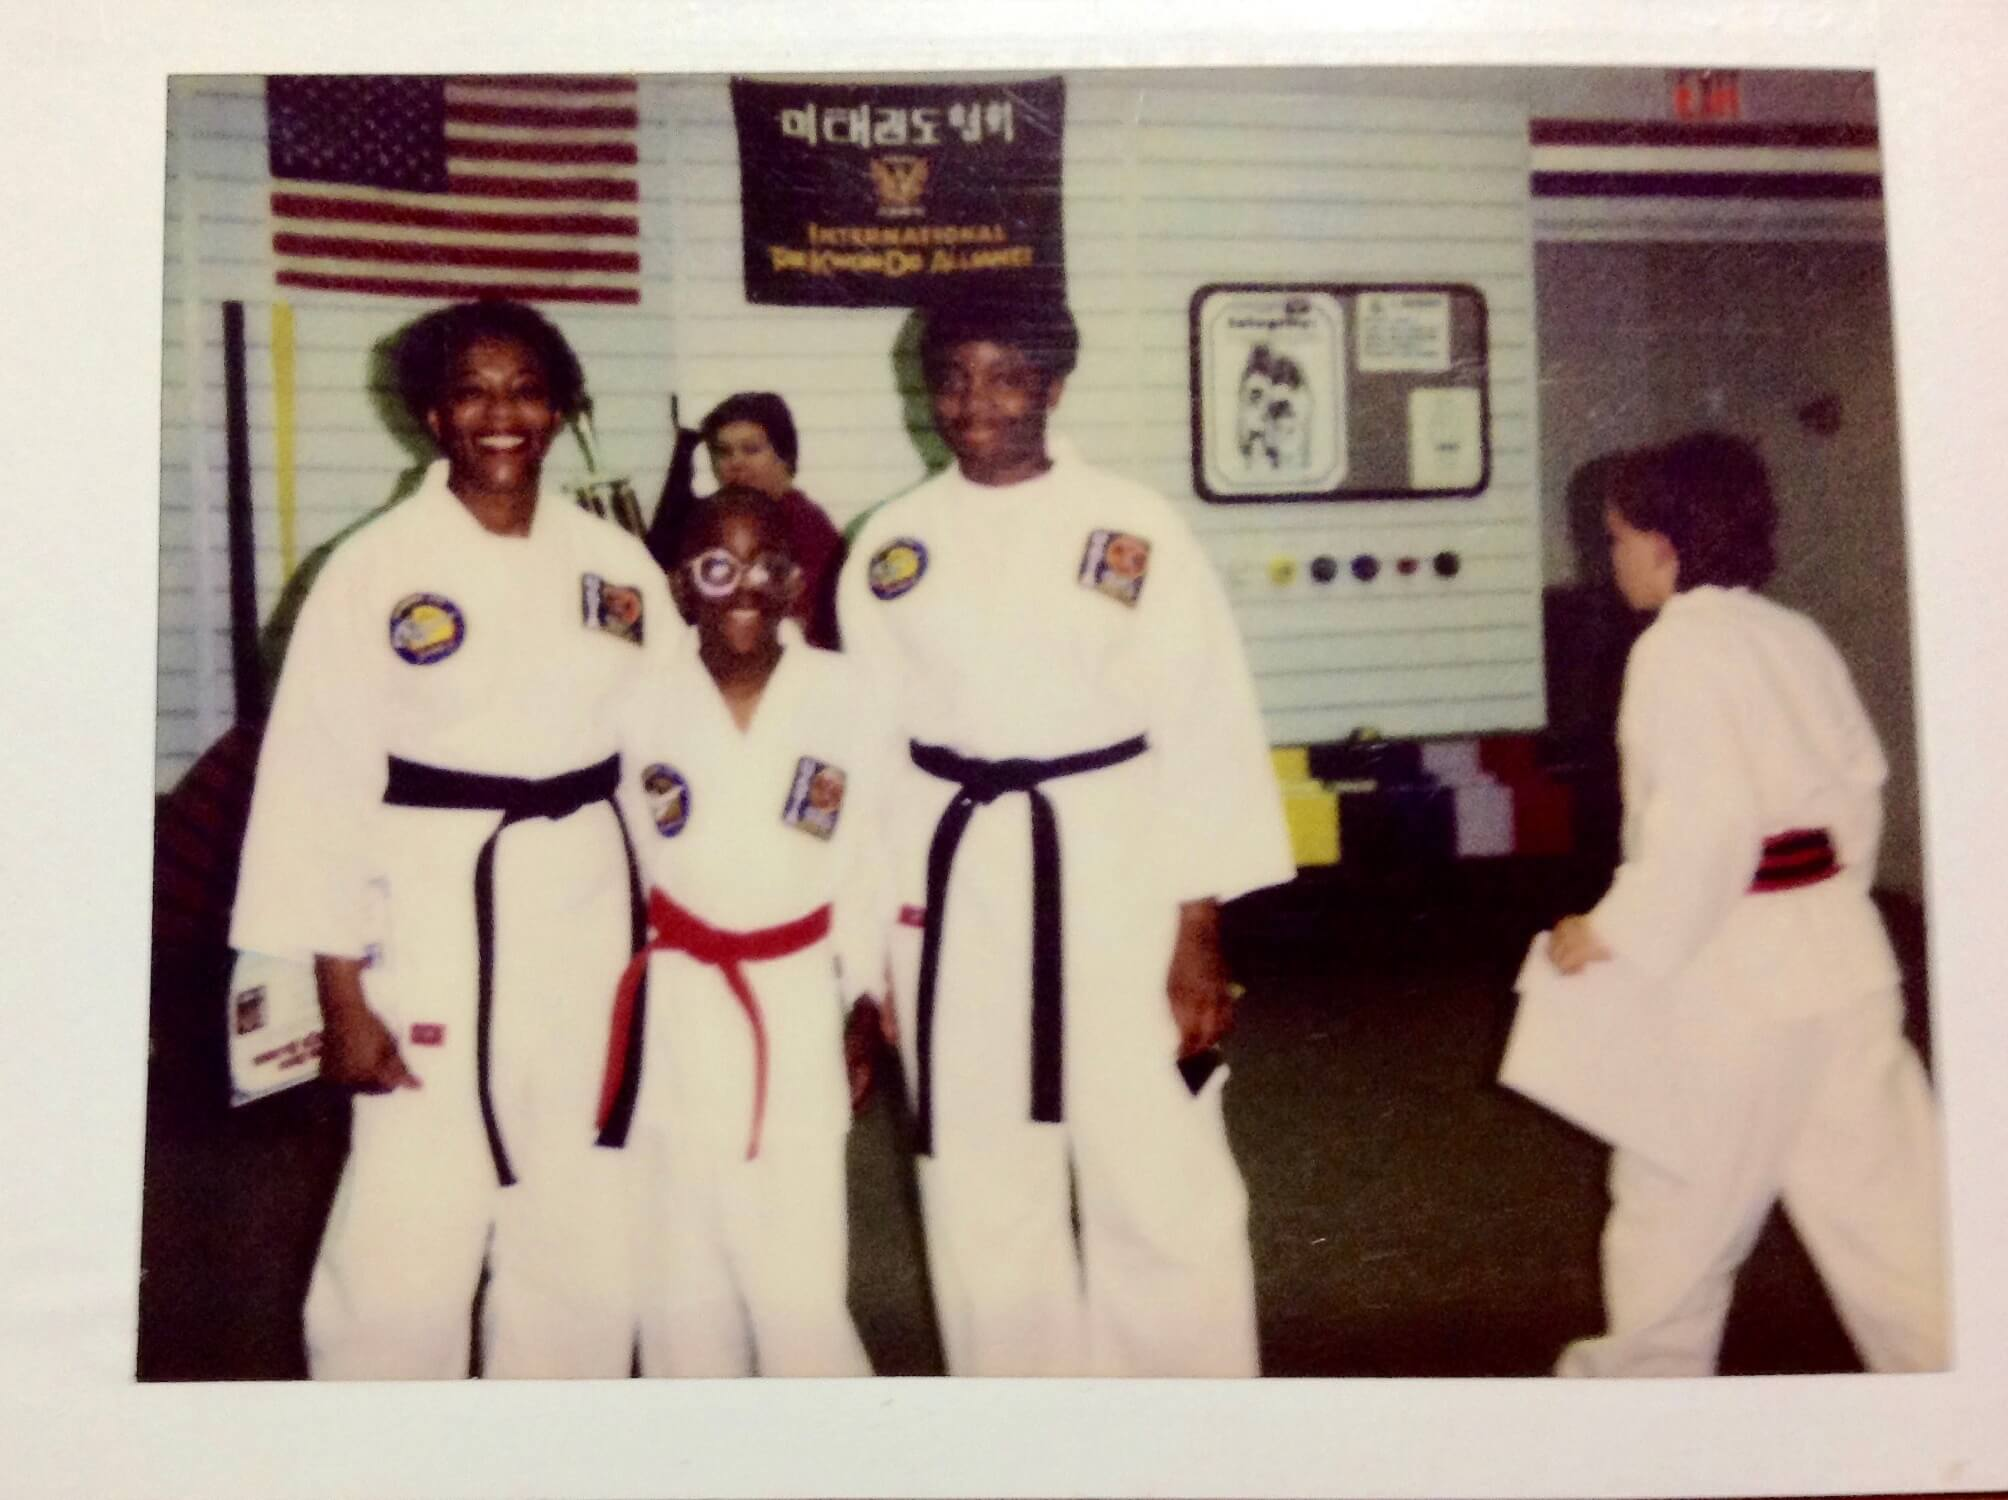 Stacey Chavis and her family at Tae Kwon Do practice.